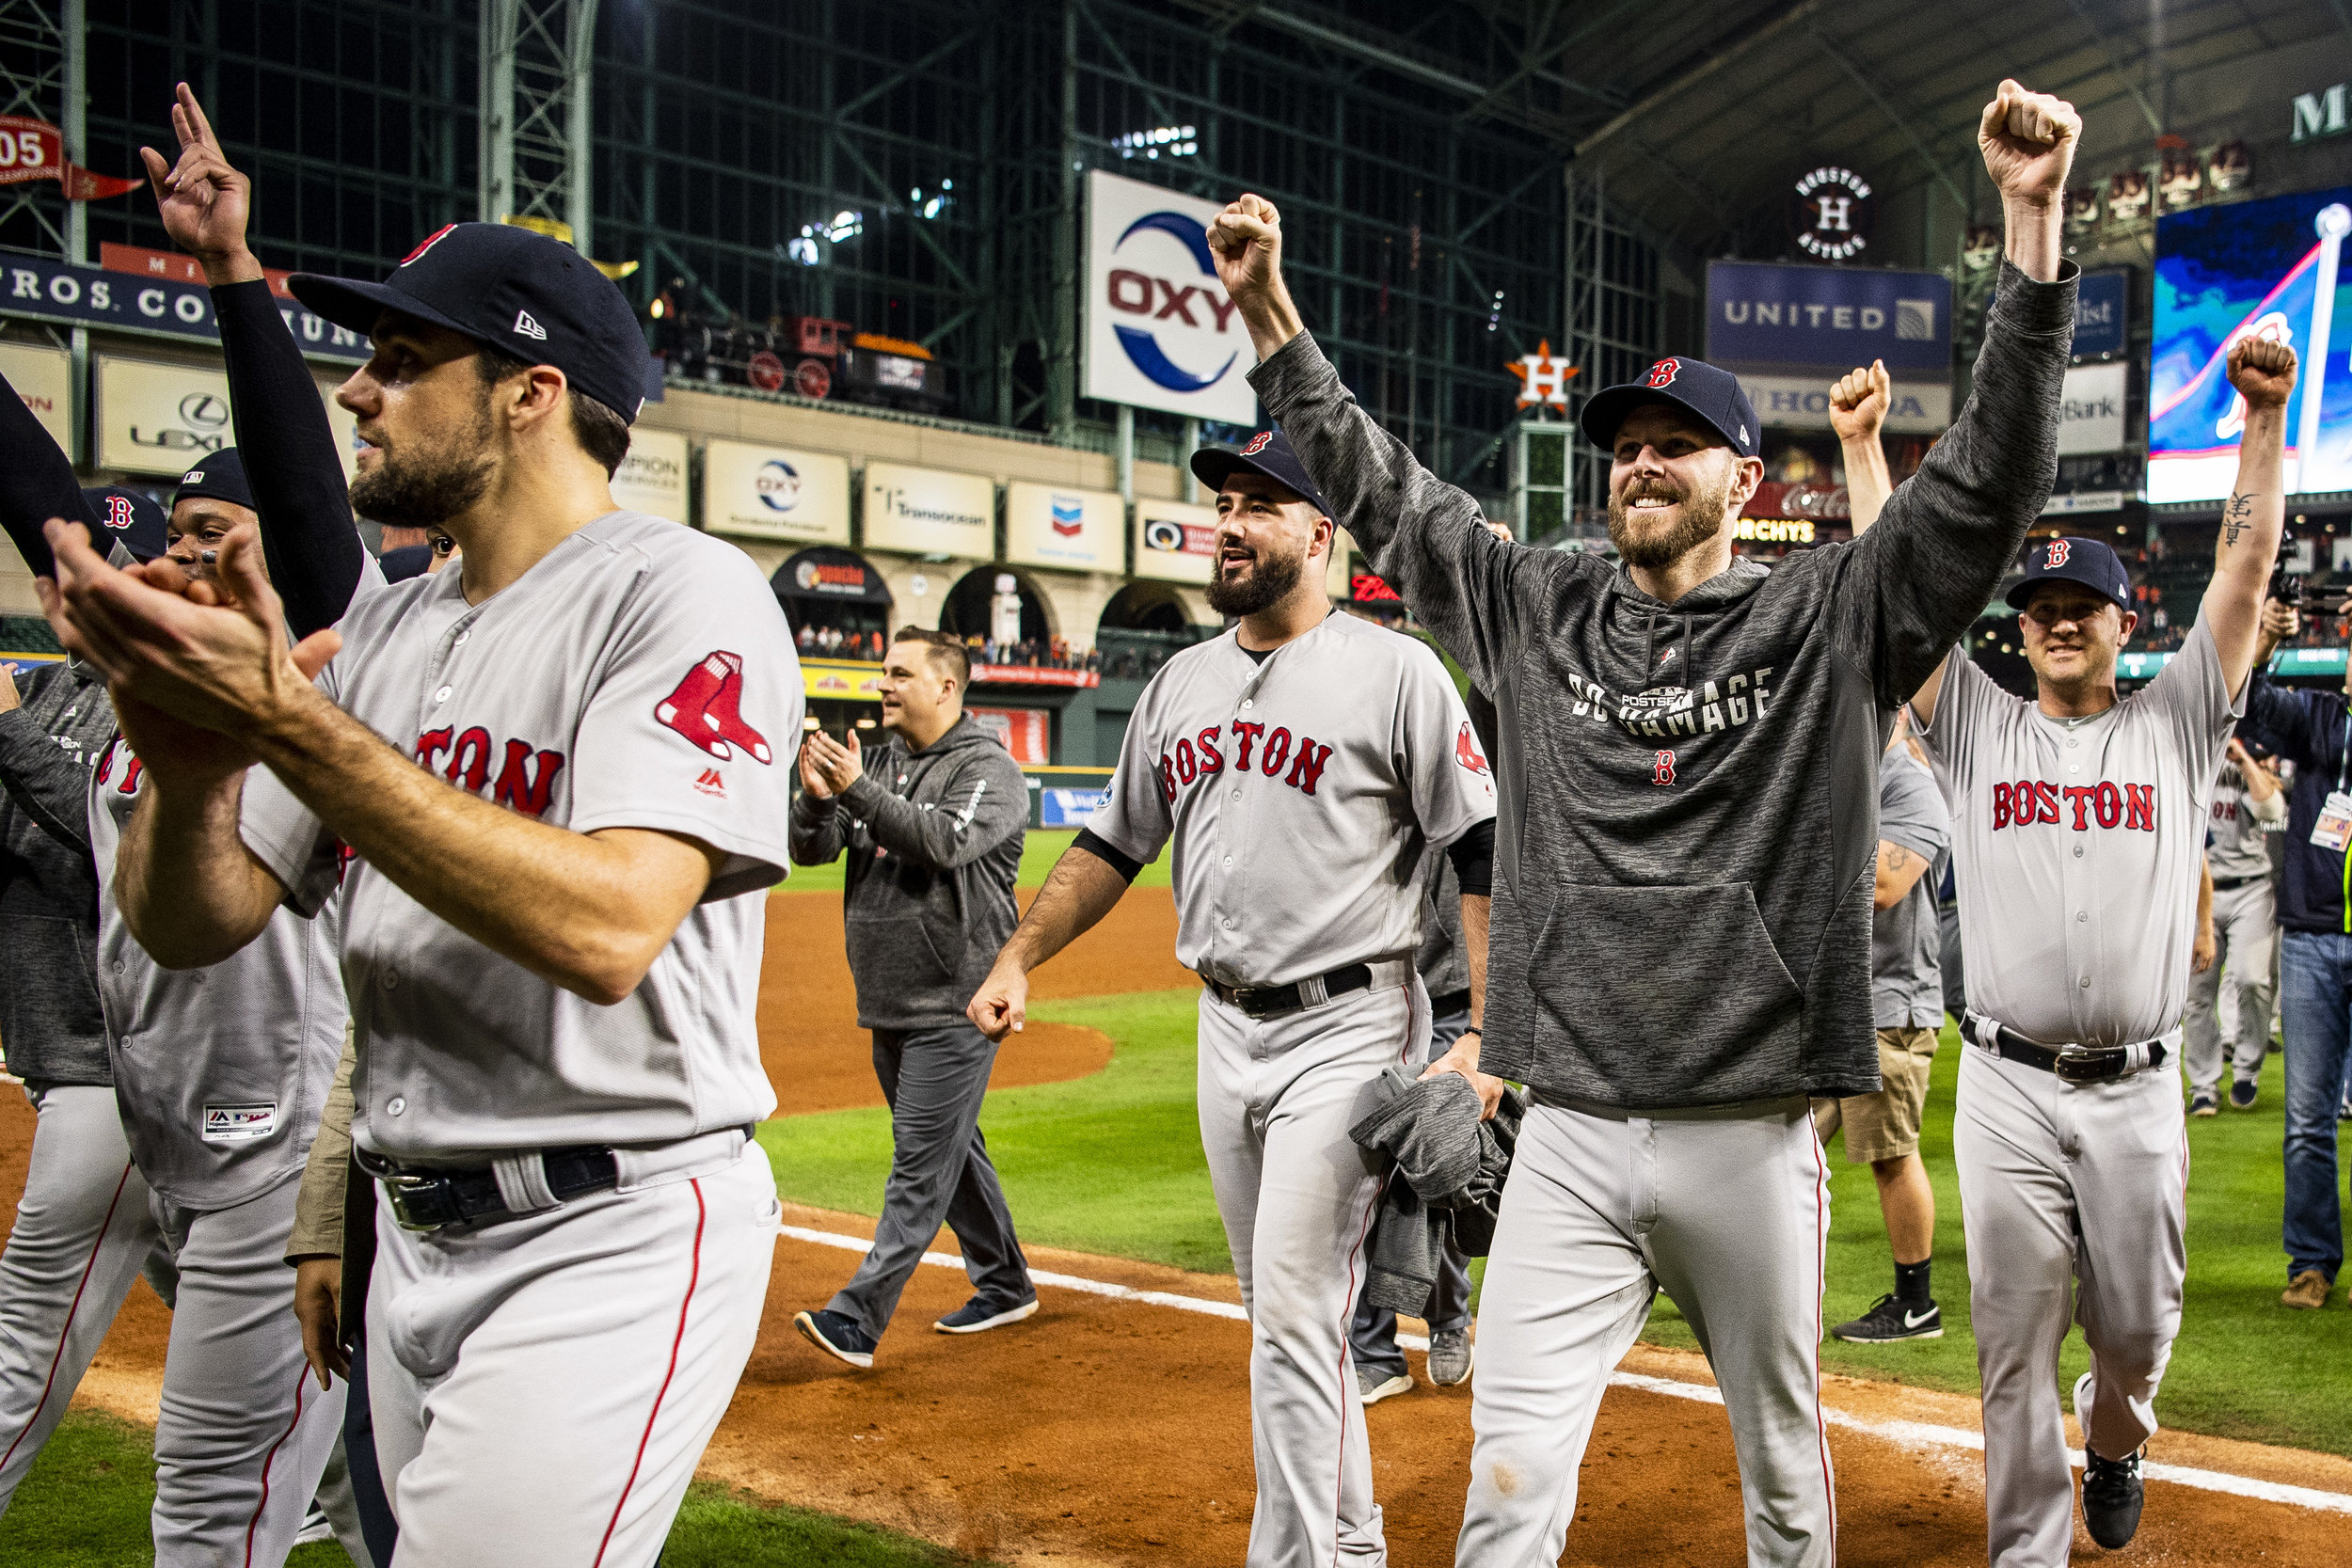 October 18, 2018, Houston, TX: The Boston Red Sox raise their hands as they walk off the field after defeating the Houston Astros in Game 5 of the ALCS to advance to the World Series at Minute Maid Park in Houston, Texas on Thursday, October 18, 2018. (Photo by Matthew Thomas/Boston Red Sox)